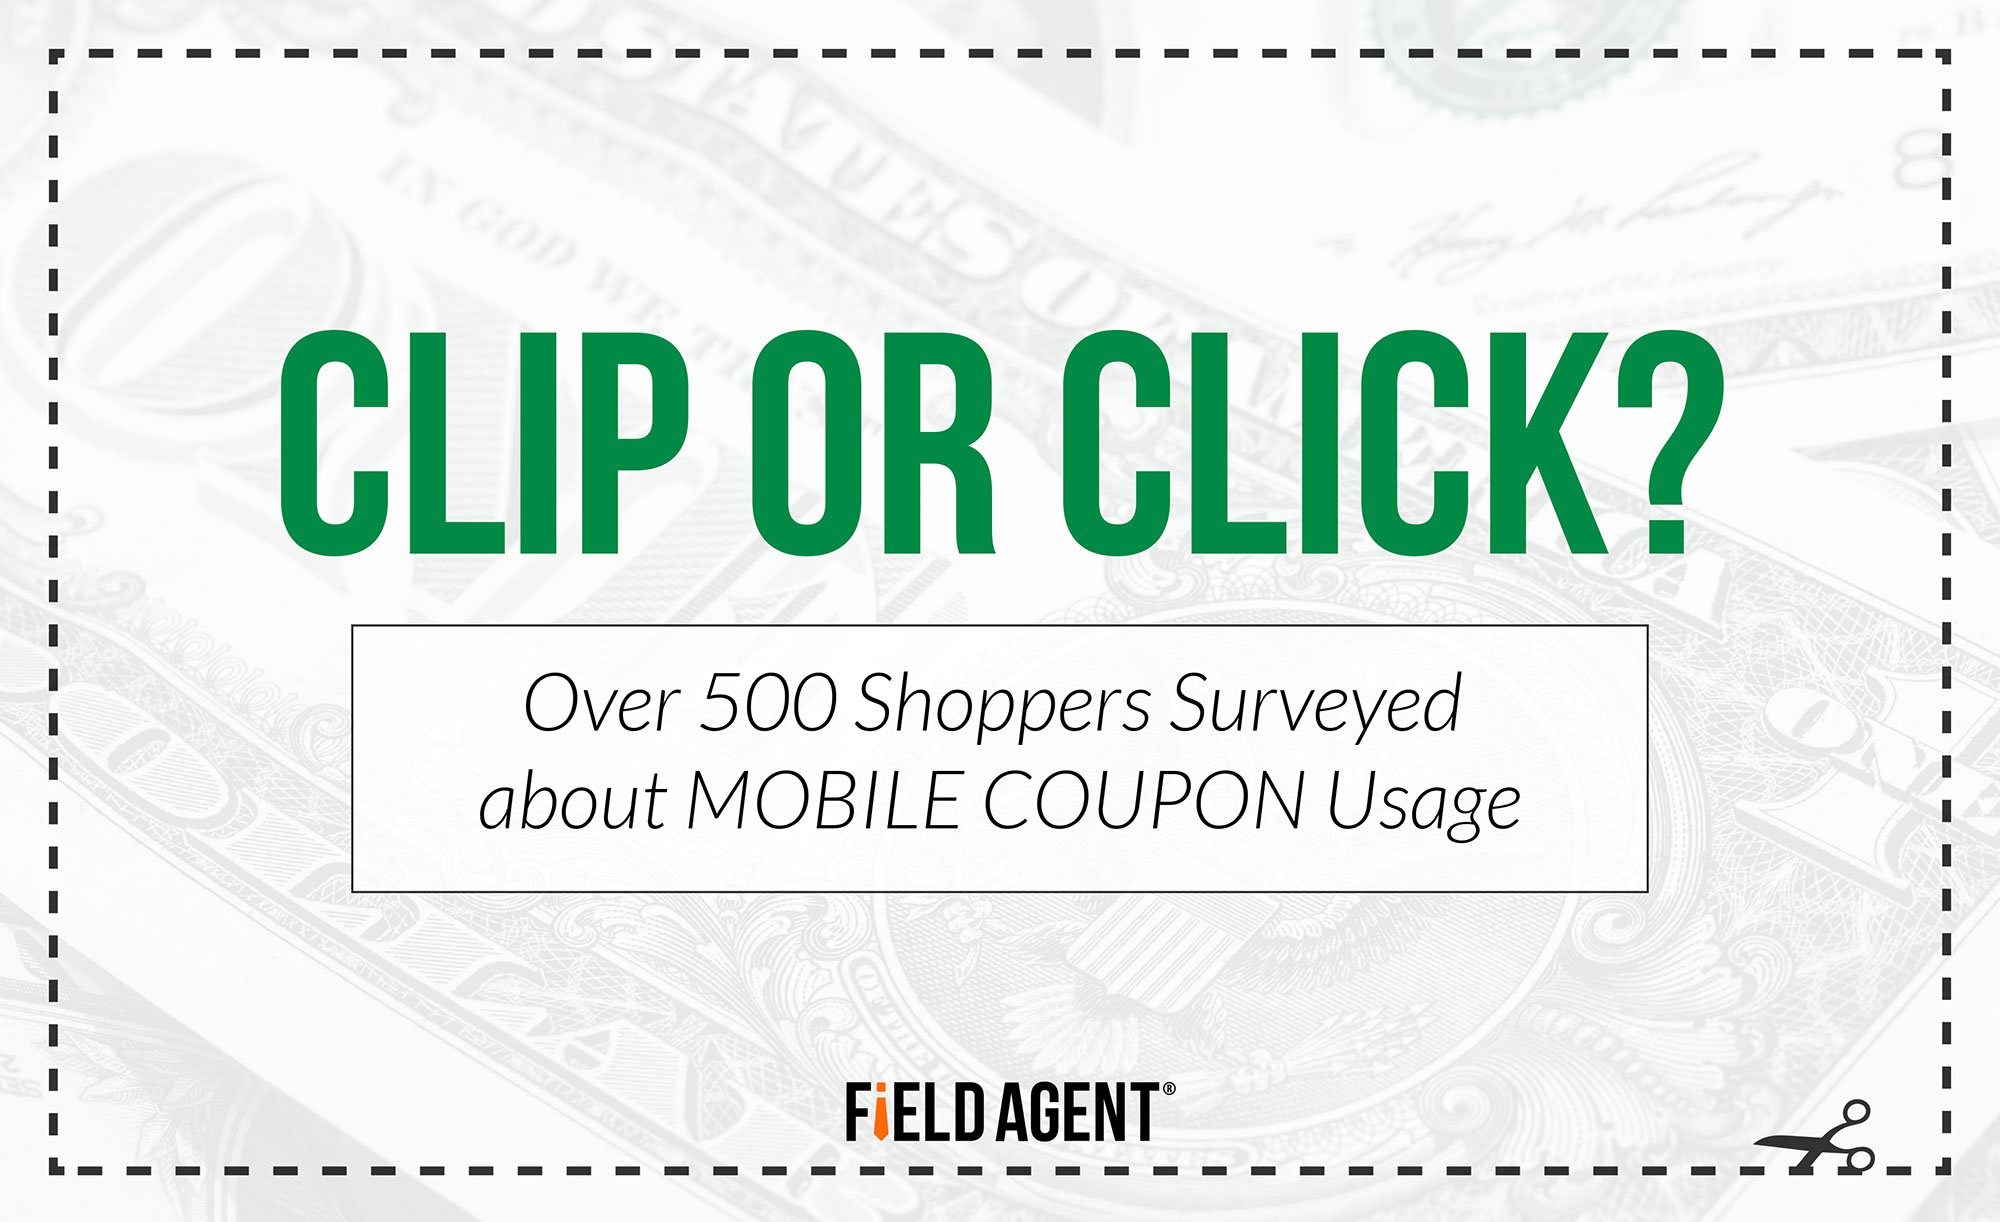 Clip or Click? Over 500 Shoppers Surveyed about MOBILE COUPON Usage